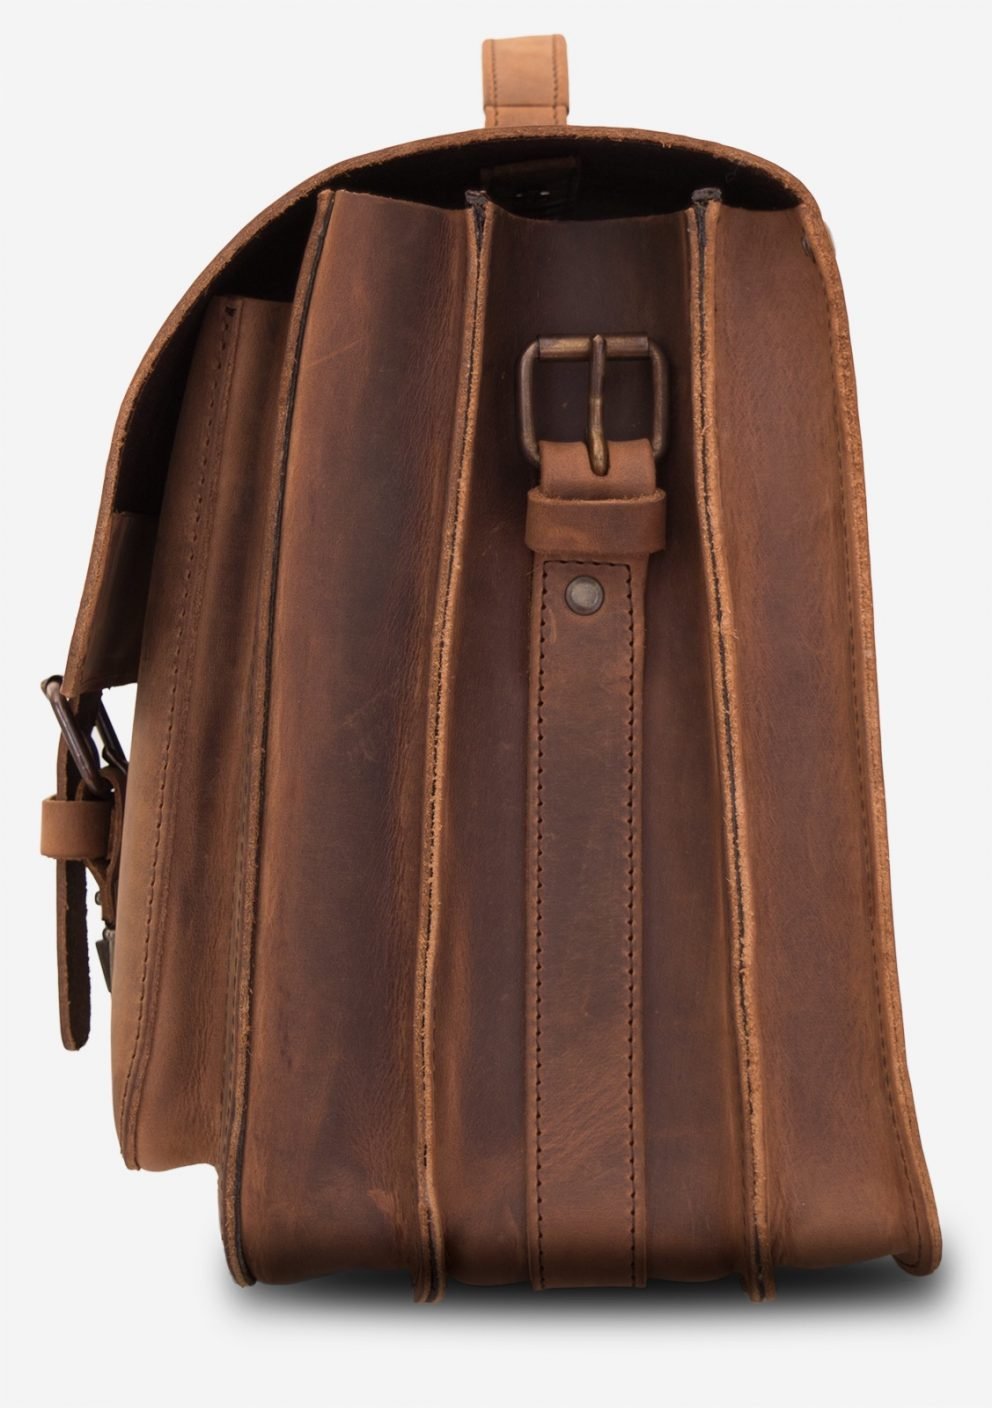 Side view of the large Professor brown leather satchel with 3 gussets and 2 front pockets.